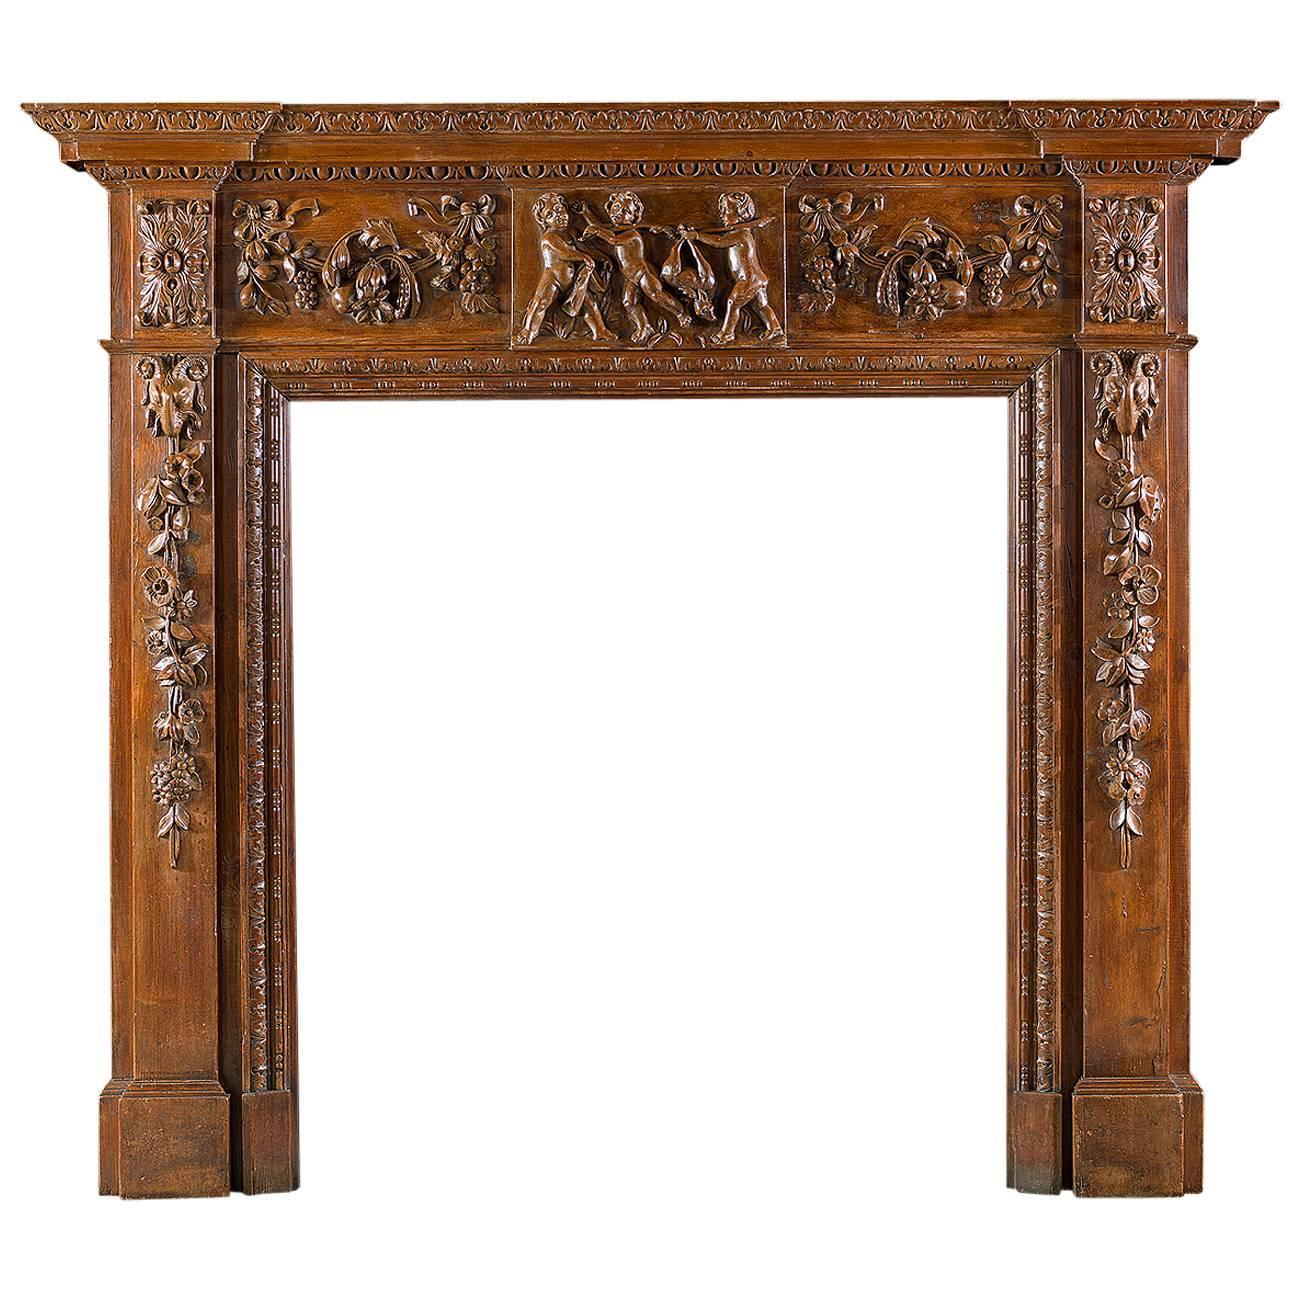 George Iii Style Carved Pine Antique Fireplace Mantel For Sale At 1stdibs